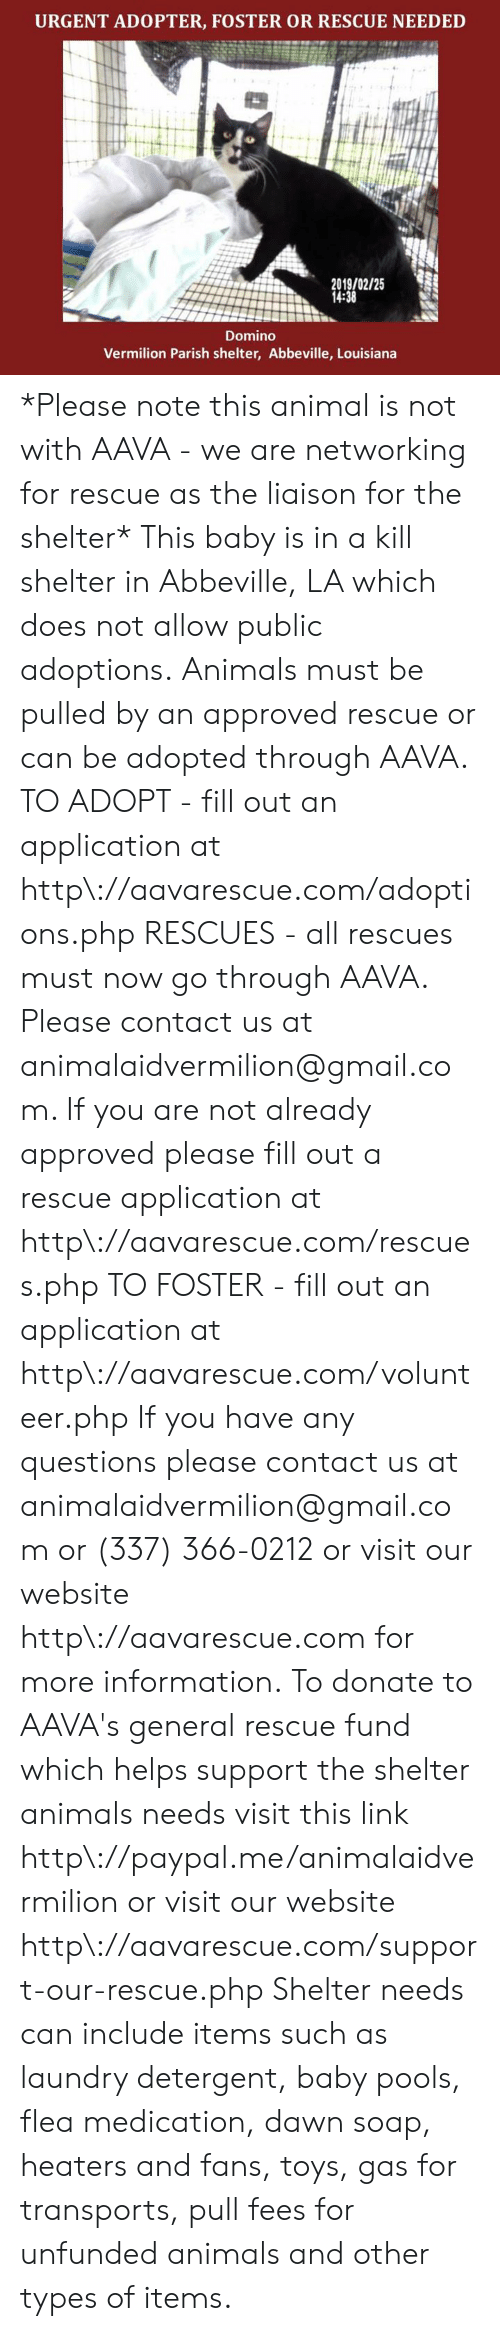 Animals, Laundry, and Memes: URGENT ADOPTER, FOSTER OR RESCUE NEEDED  2019/02/25  14:38  Domino  Vermilion Parish shelter, Abbeville, Louisiana *Please note this animal is not with AAVA - we are networking for rescue as the liaison for the shelter* This baby is in a kill shelter in Abbeville, LA which does not allow public adoptions. Animals must be pulled by an approved rescue or can be adopted through AAVA.  TO ADOPT - fill out an application at http\://aavarescue.com/adoptions.php  RESCUES - all rescues must now go through AAVA. Please contact us at animalaidvermilion@gmail.com. If you are not already approved please fill out a rescue application at http\://aavarescue.com/rescues.php  TO FOSTER - fill out an application at http\://aavarescue.com/volunteer.php  If you have any questions please contact us at animalaidvermilion@gmail.com or (337) 366-0212 or visit our website http\://aavarescue.com for more information.  To donate to AAVA's general rescue fund which helps support the shelter animals needs visit this link http\://paypal.me/animalaidvermilion or visit our website http\://aavarescue.com/support-our-rescue.php Shelter needs can include items such as laundry detergent, baby pools, flea medication, dawn soap, heaters and fans, toys, gas for transports, pull fees for unfunded animals and other types of items.